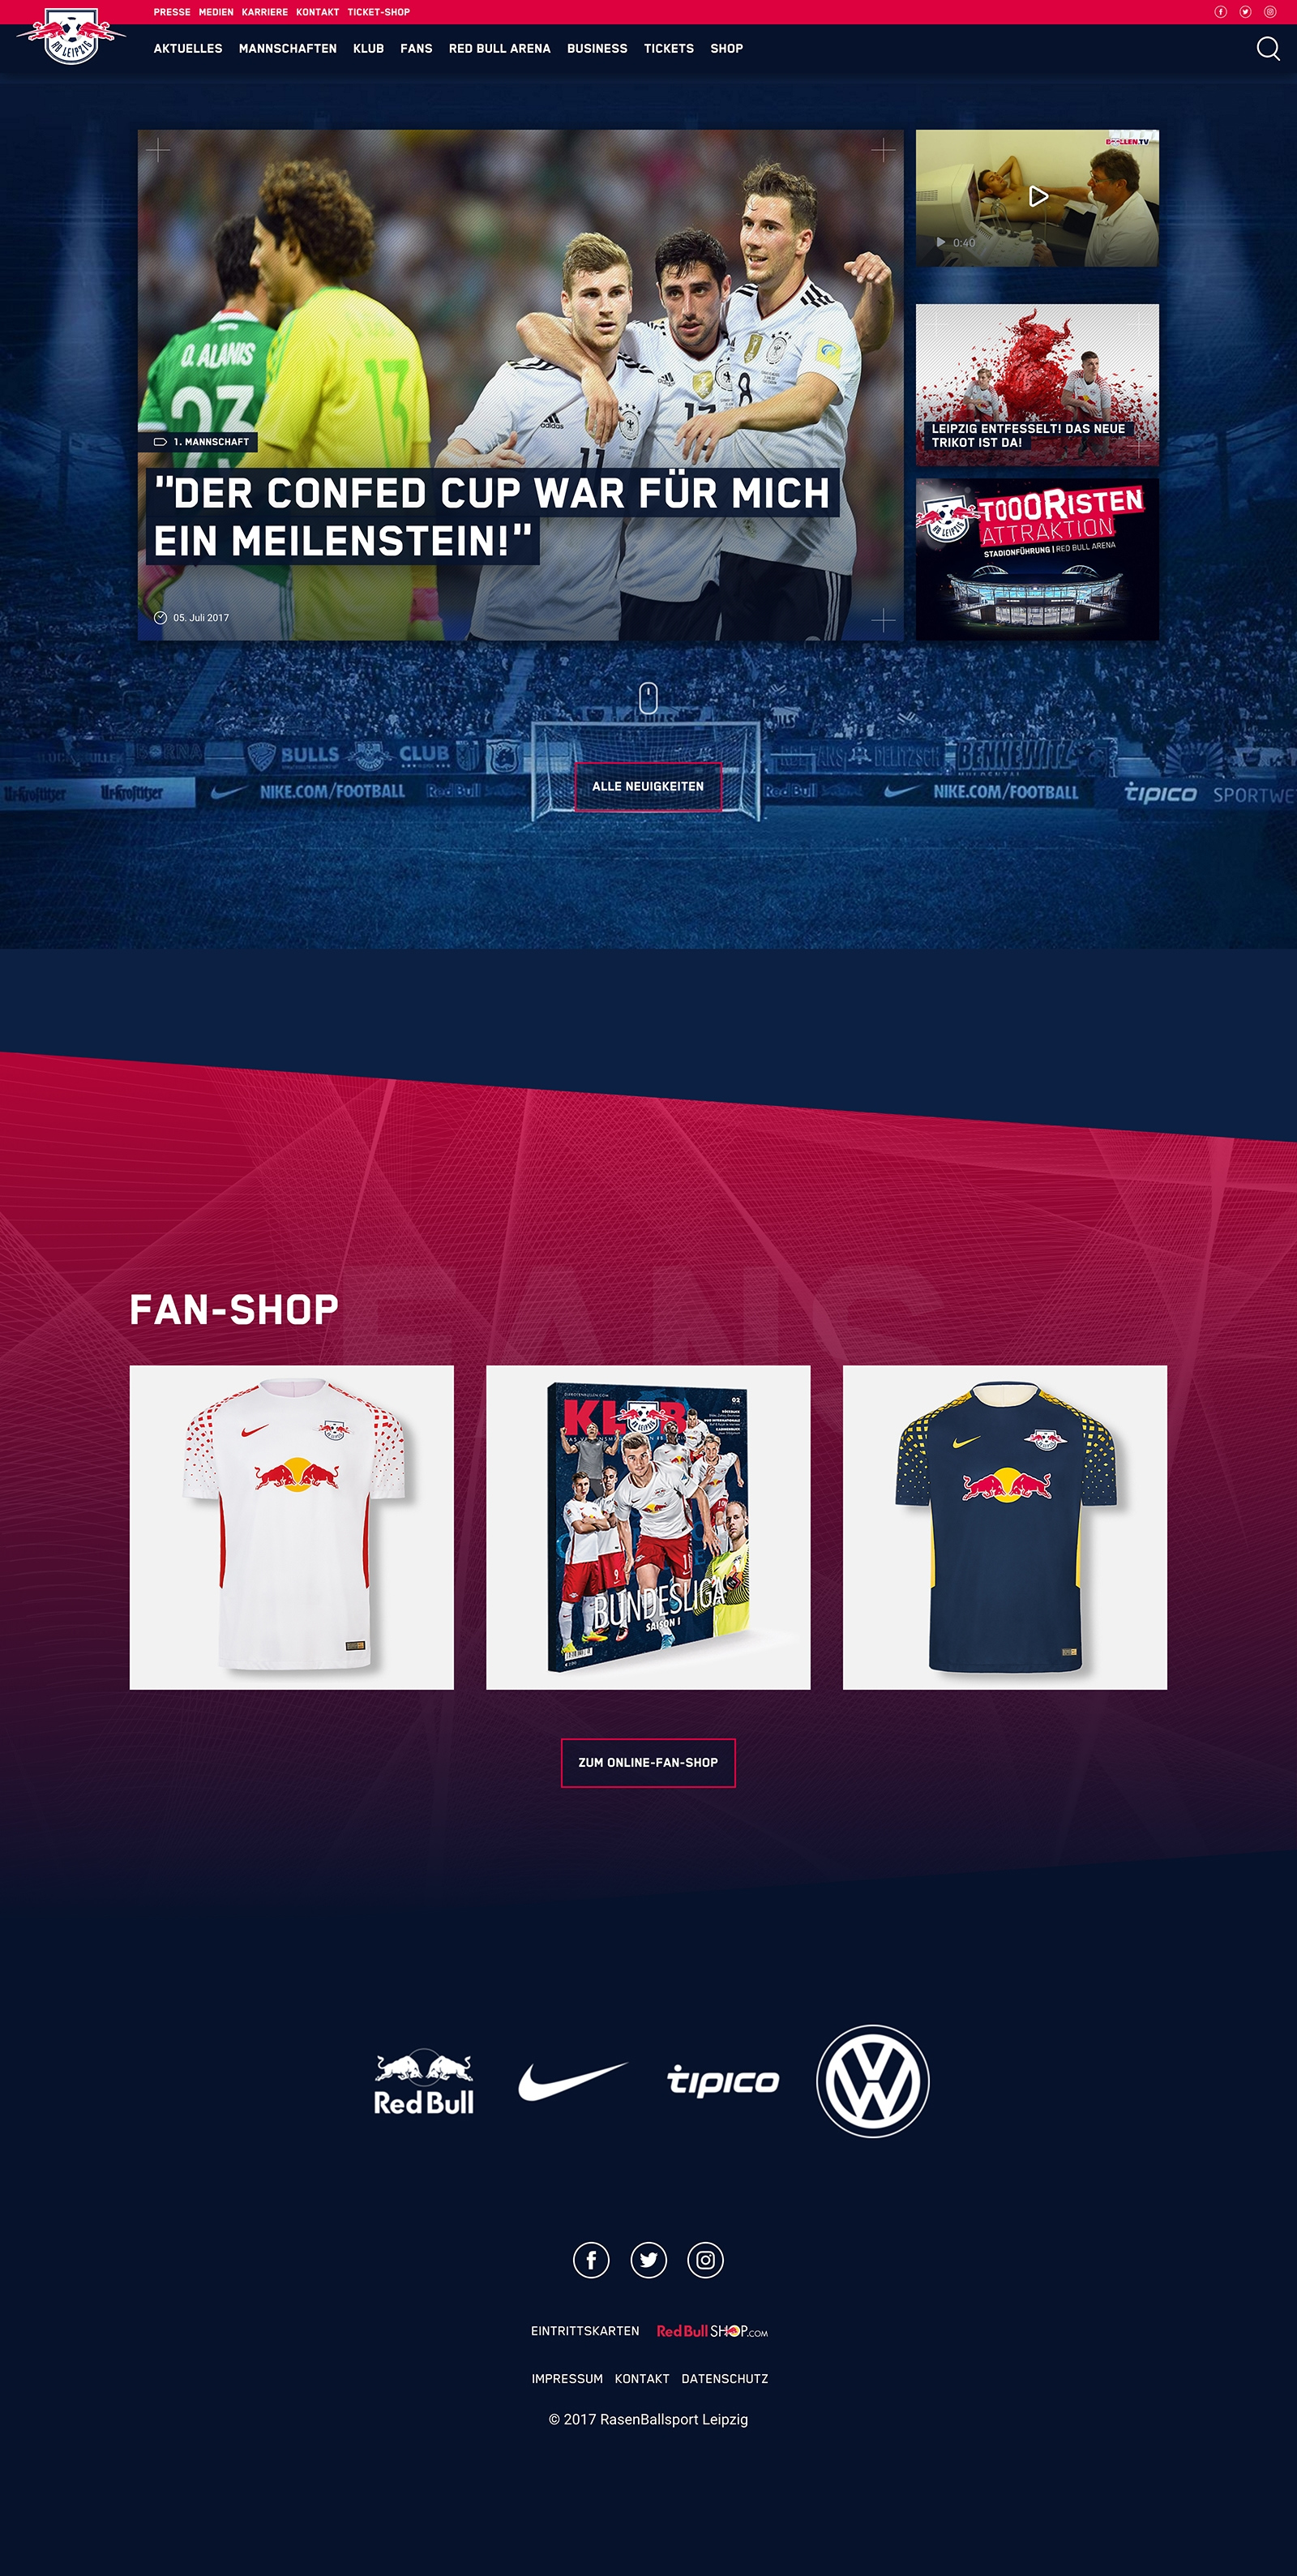 rb leipzig website